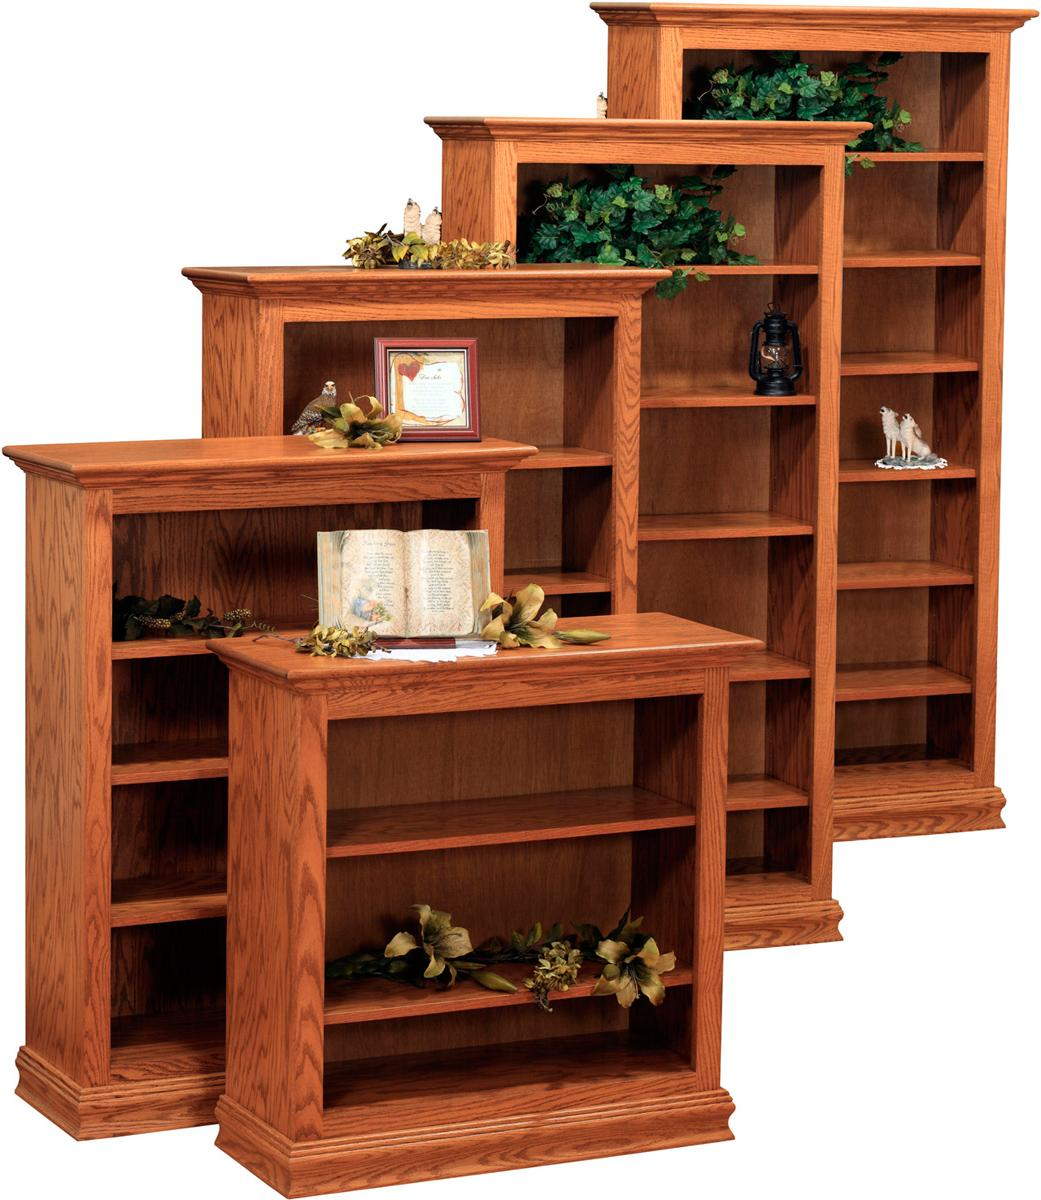 Traditional Bookcases - ply sides